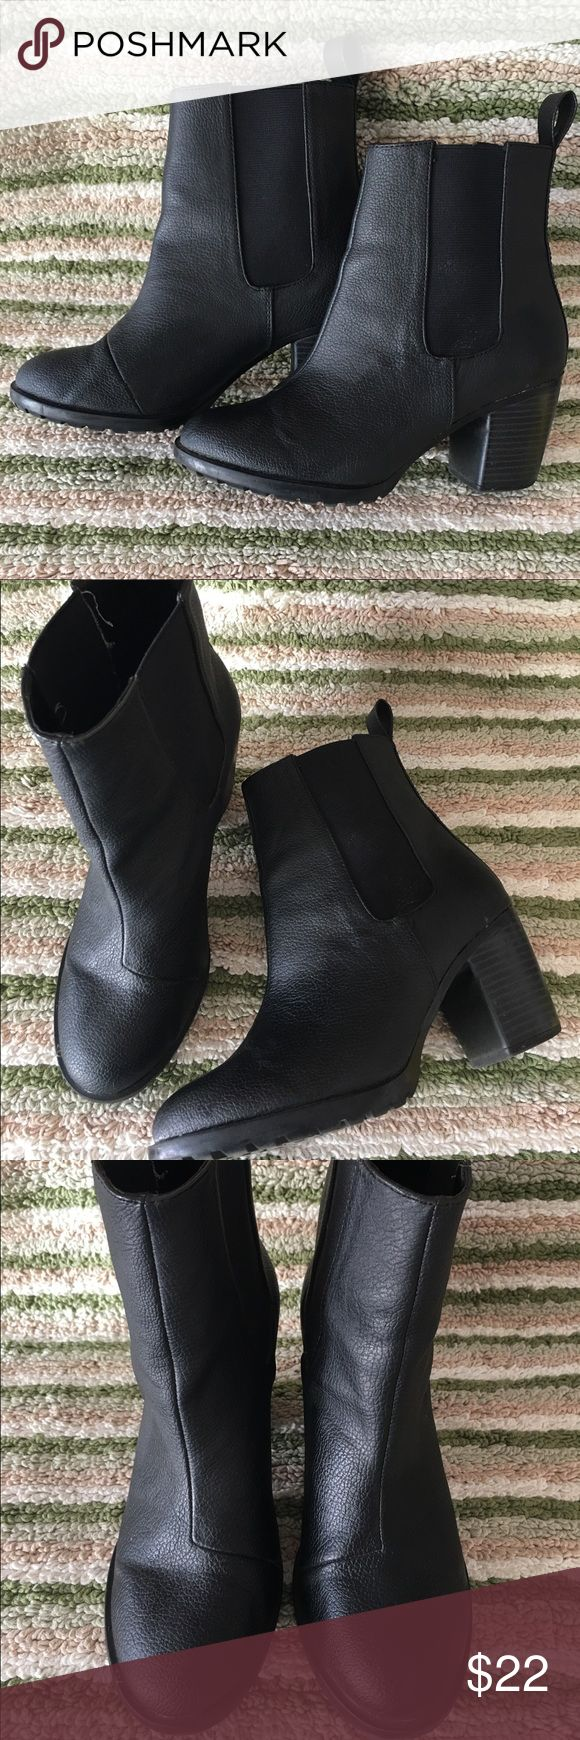 Divided@ H&M Black Ankle Boots 🌺BUY 1 GET 1 FREE @ WHOLE CLOSET🌺  Divided@ H&M Black Ankle Boots   € Size: 6 € Shoe Width: Medium (B, M) € Heel Height (Inches): 2.75 Inches € Shaft Height (Inches): 5.5 Inches € Shaft Width (Inches): 12 Inches € Closure: Side Zipper € Material: All Man Made  € Fabric Type: Faux Leather € Specialty: Elastic  € Condition: Excellent like new € Retail price: $40 Divided Shoes Ankle Boots & Booties